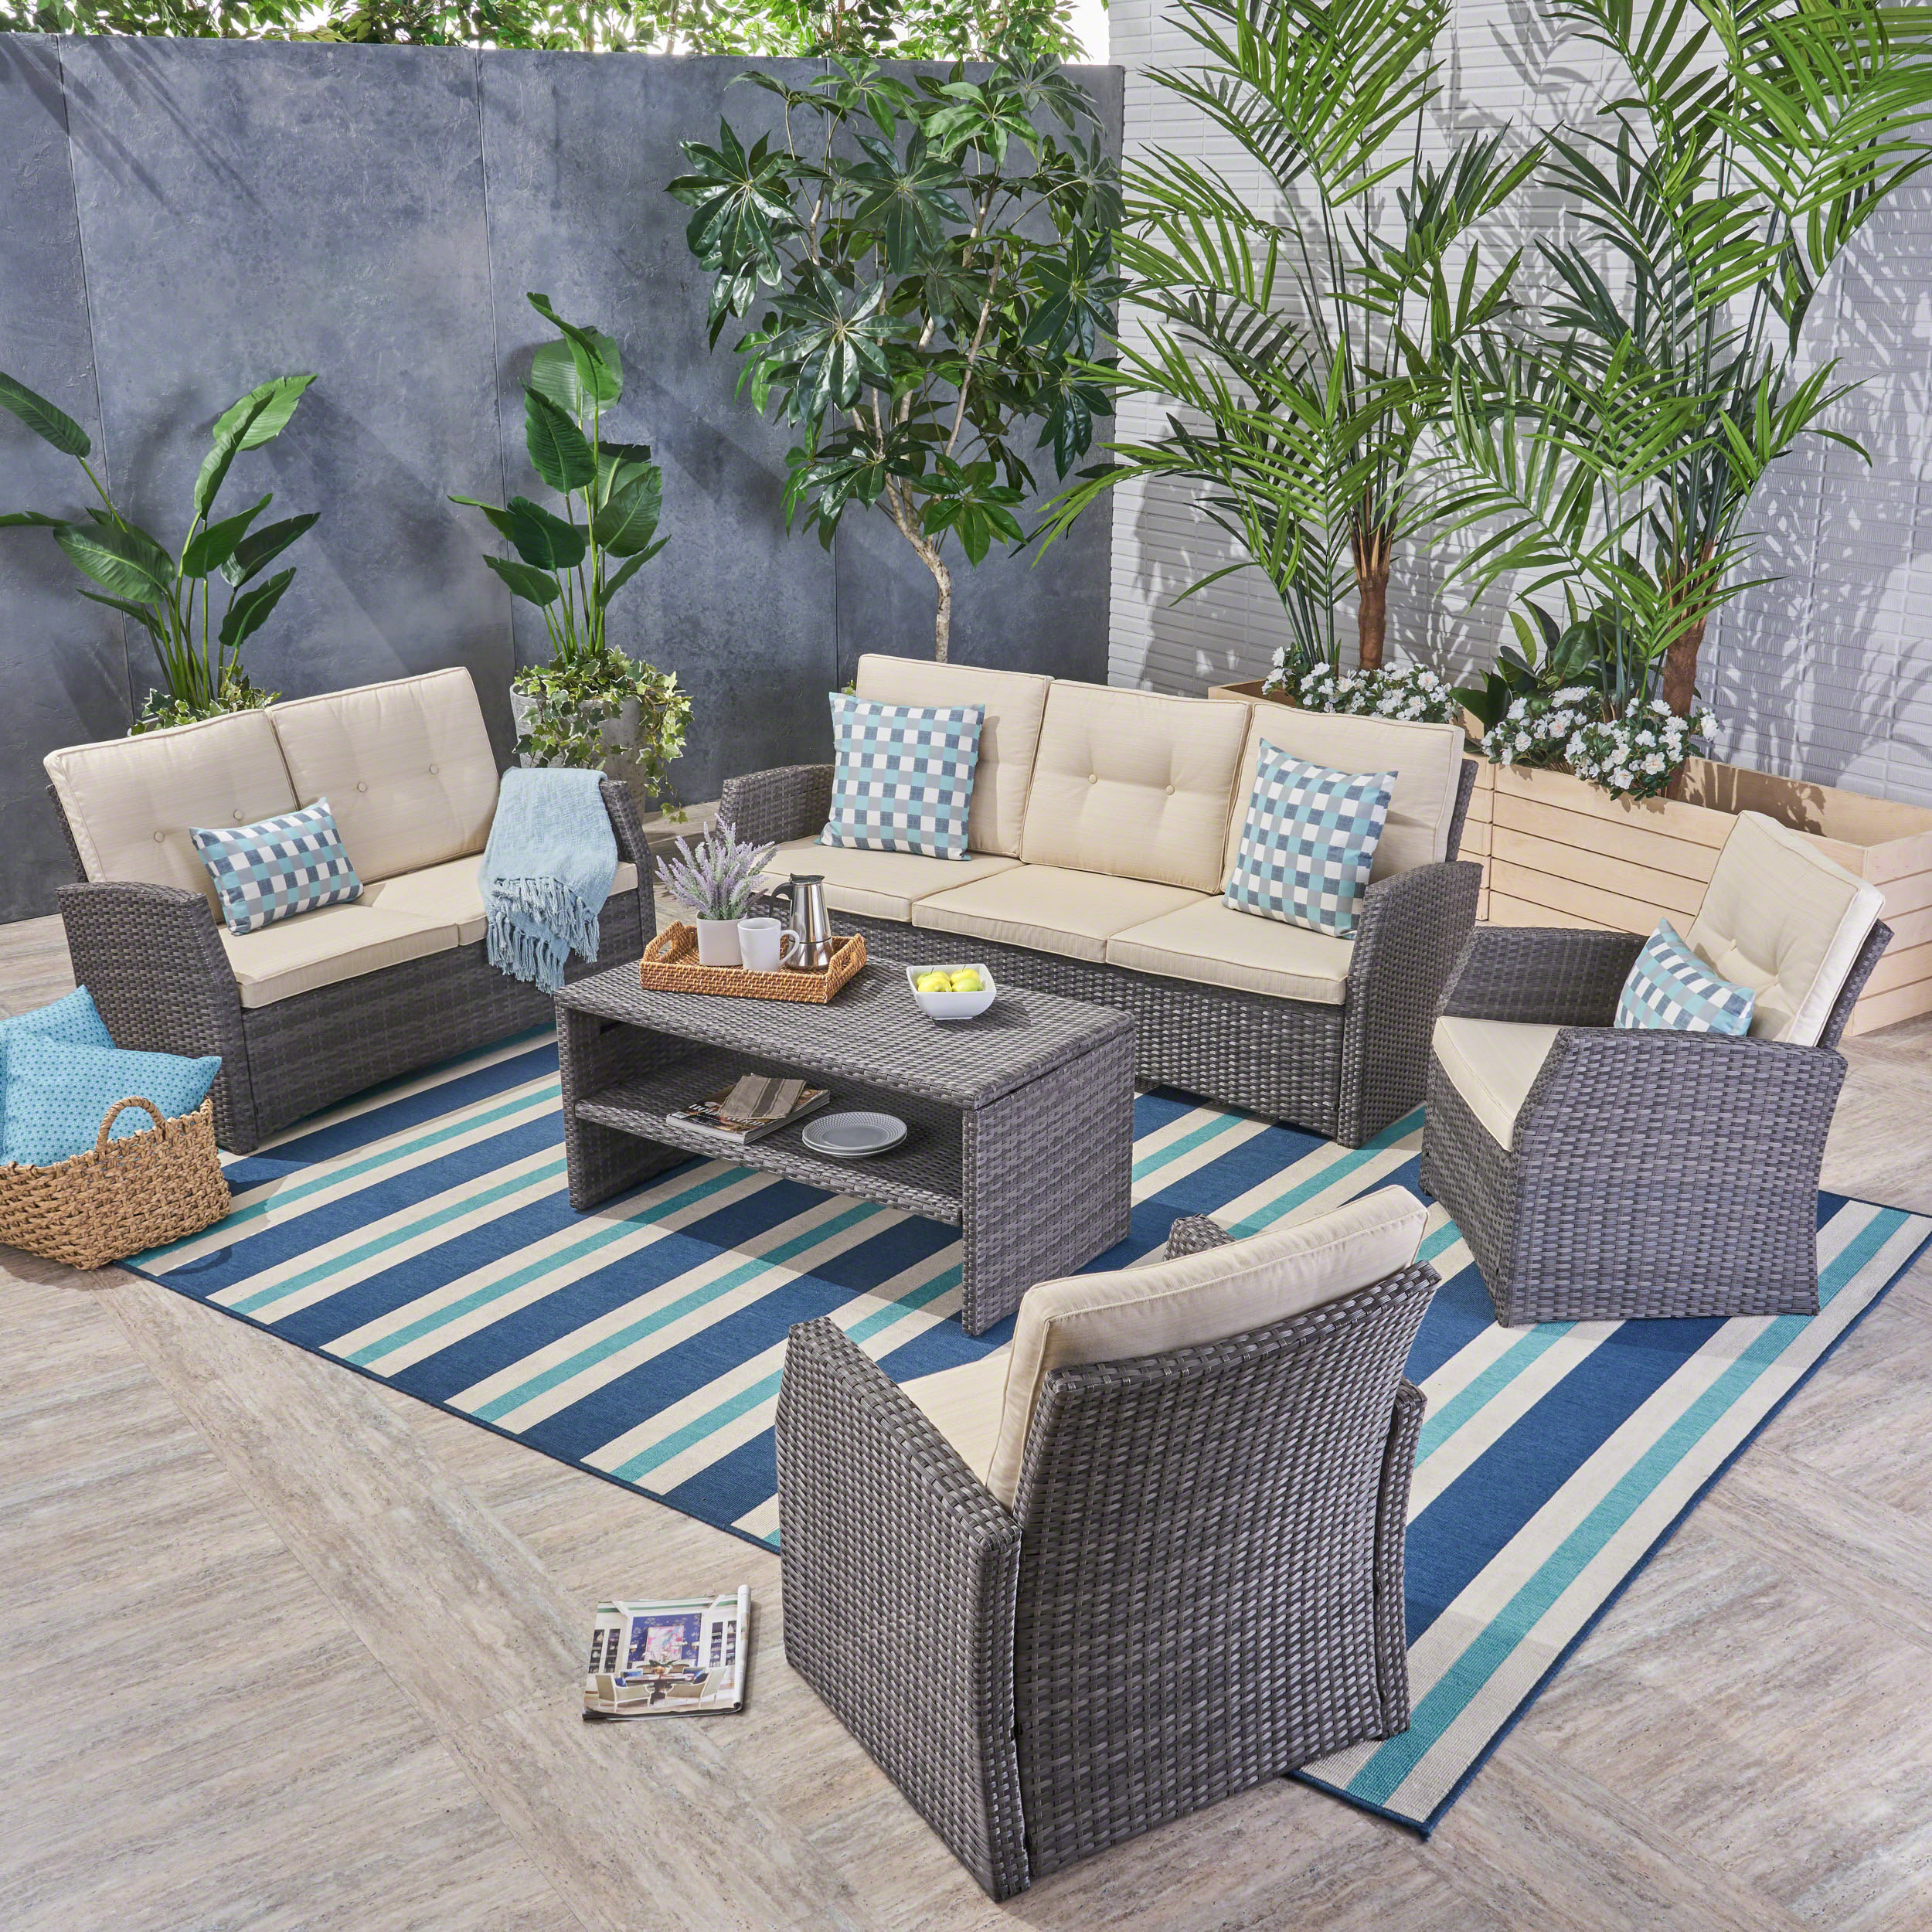 Aydin Outdoor 5 Piece 7-Seater Wicker Chat Set with Cushions, Gray, Beige